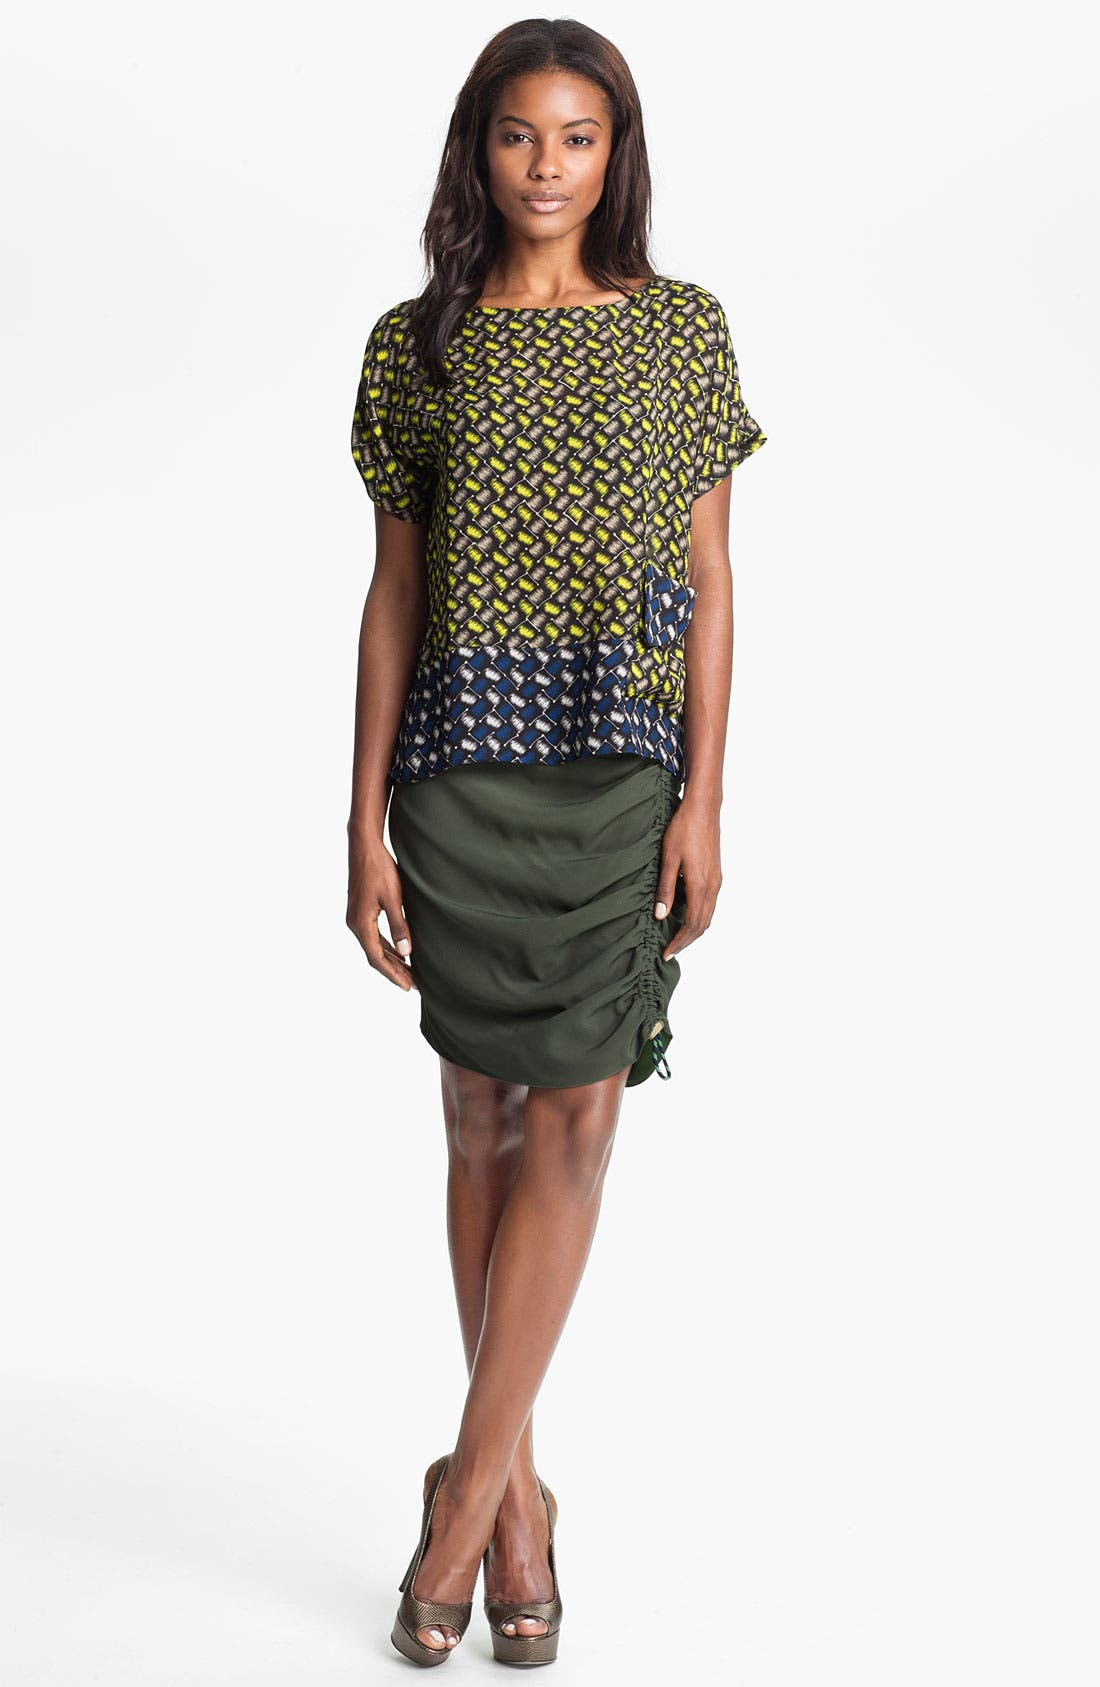 Main Image - KENZO Tunic Top & Skirt